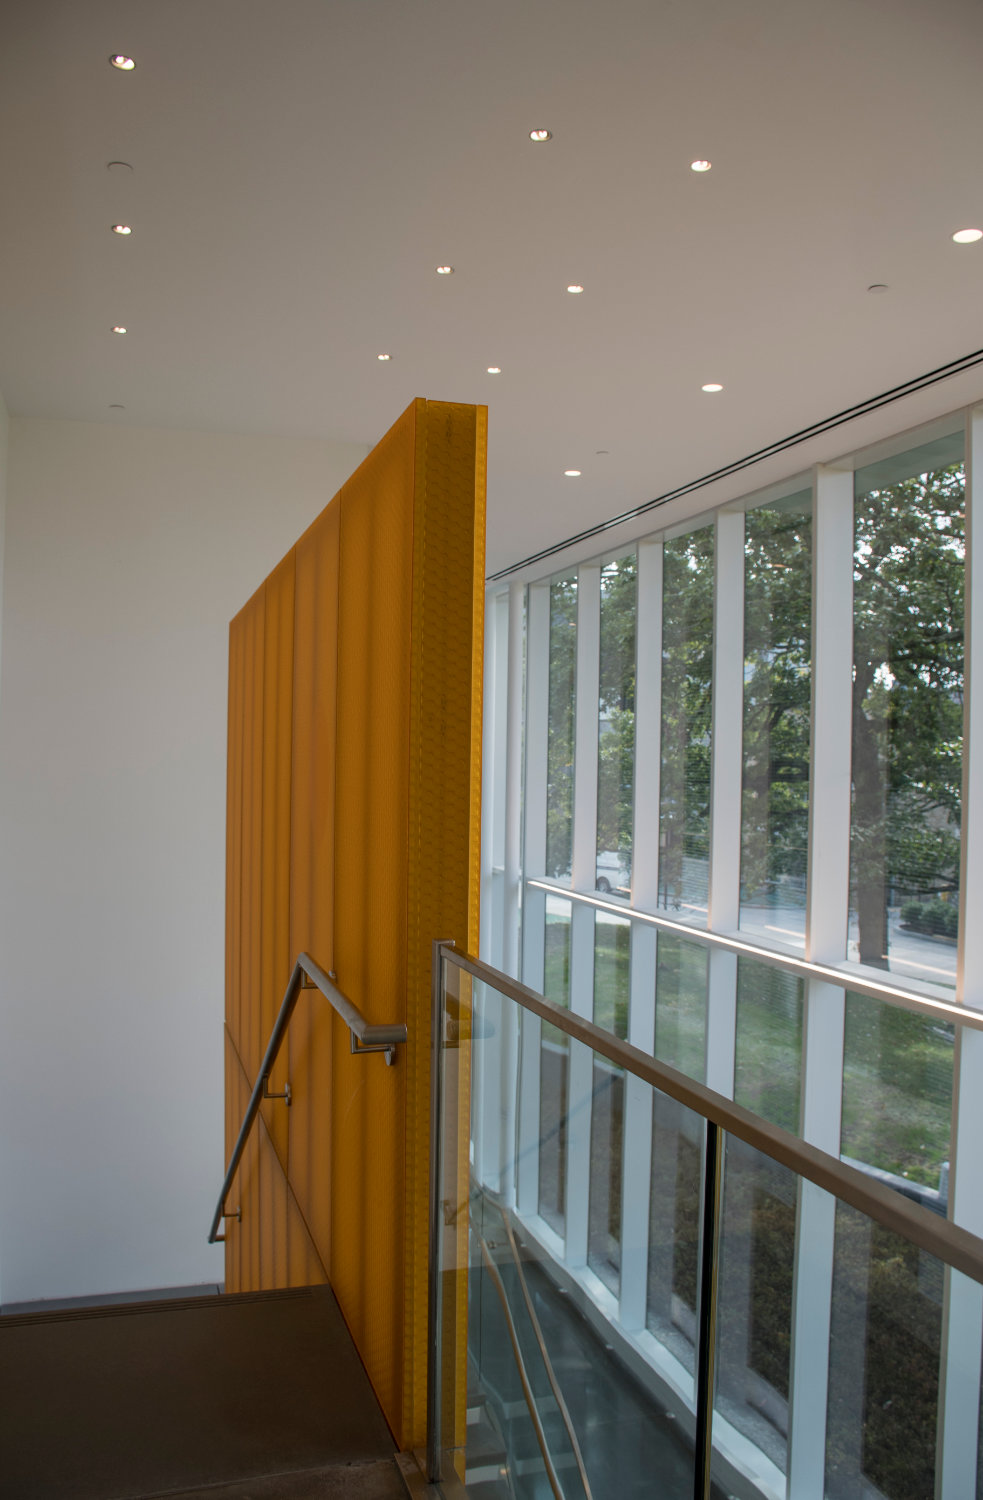 A staircase leads down to an open seating space on the ground floor level